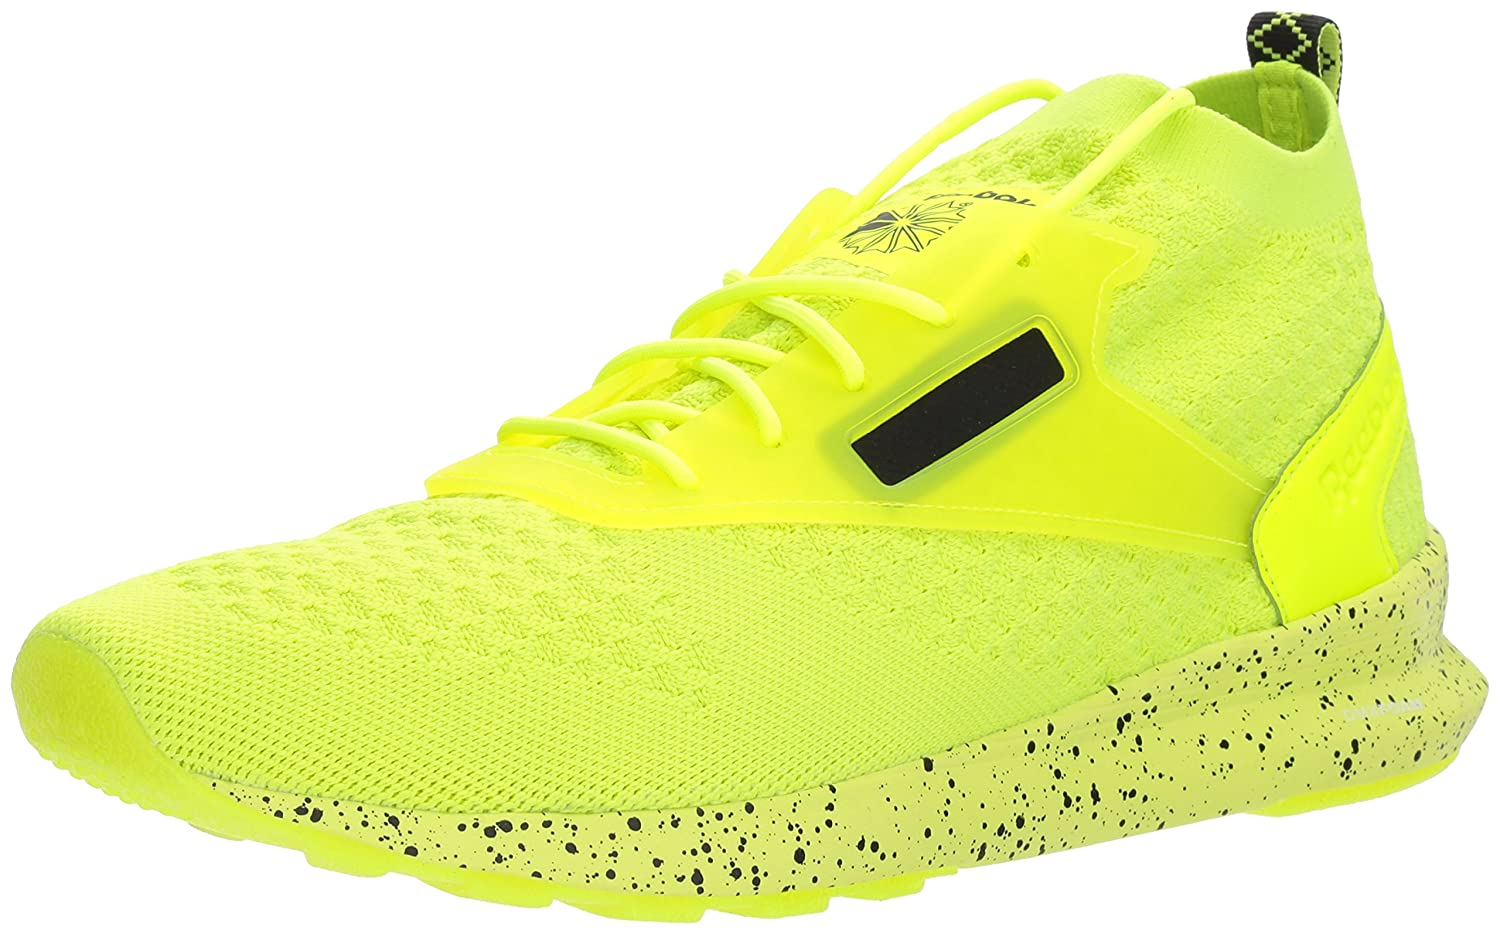 [リーボック] US スニーカー D(M) ZOKU RUNNER HM B0747VP5FY 7 Solar Yellow/Black/White 7 D(M) US 7 D(M) US|Solar Yellow/Black/White, 美容理容サロン用品の理美通:7822239b --- smtp2.ferraridentalclinic.com.lb